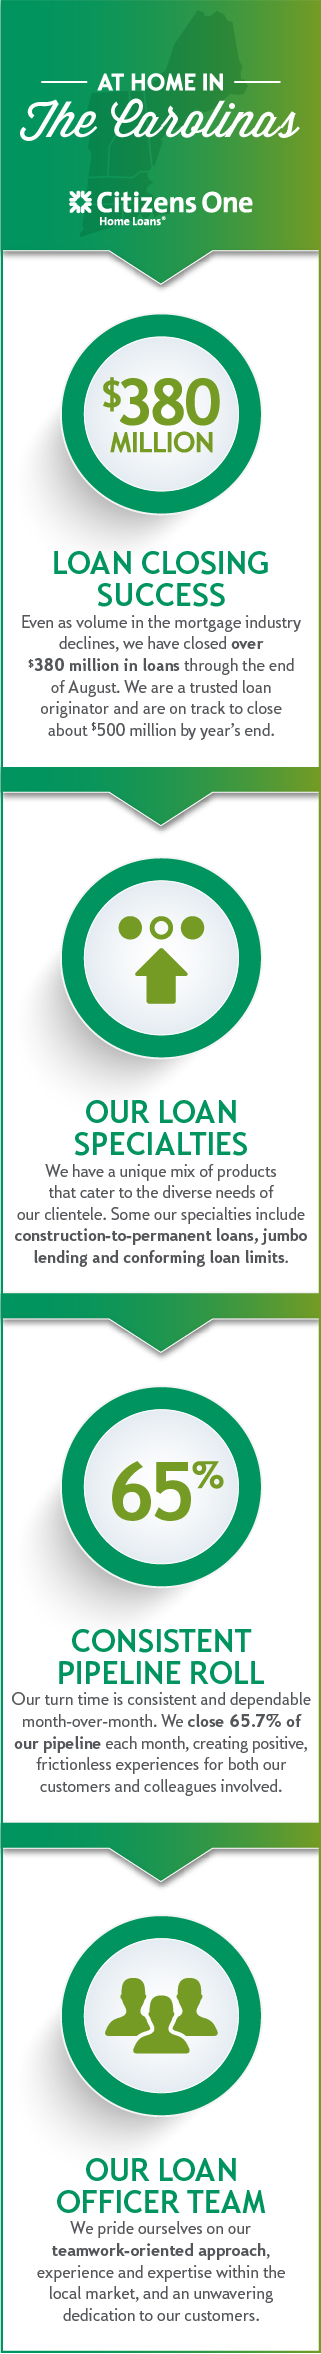 Citizens One Pay My Loan : citizens, Carolinas:, Citizens, Loans